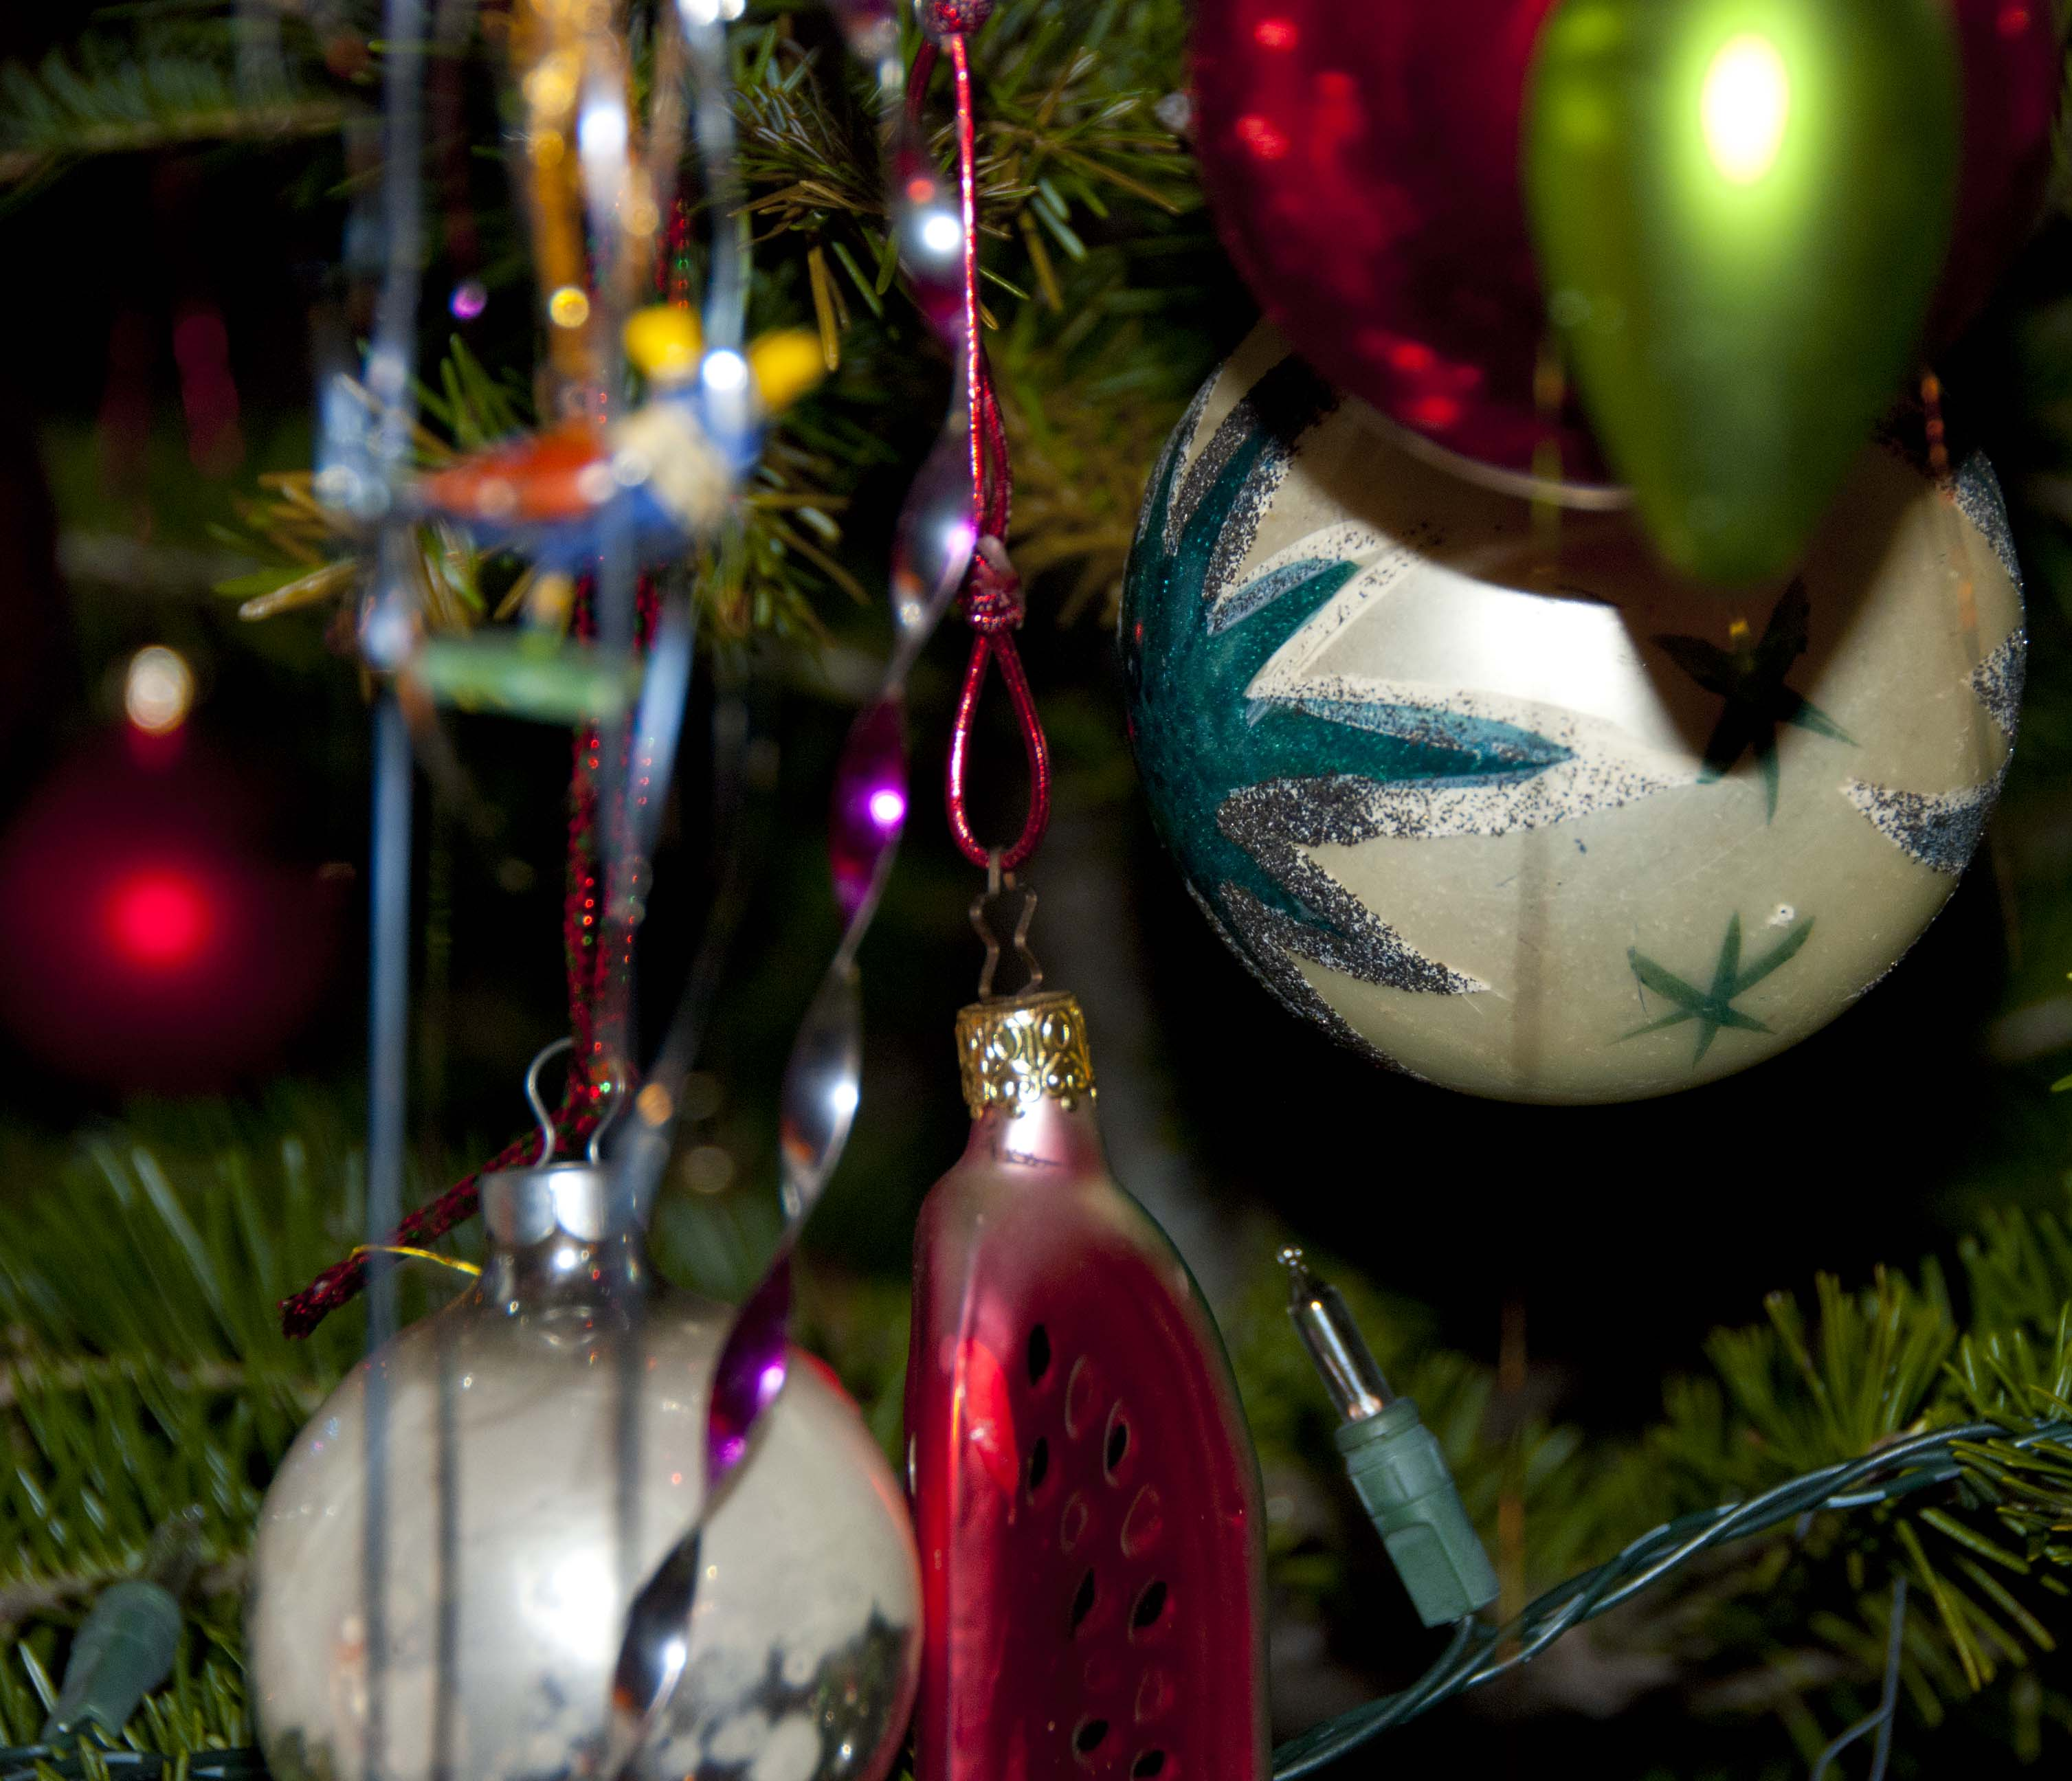 Camping christmas tree ornaments - Candlelight